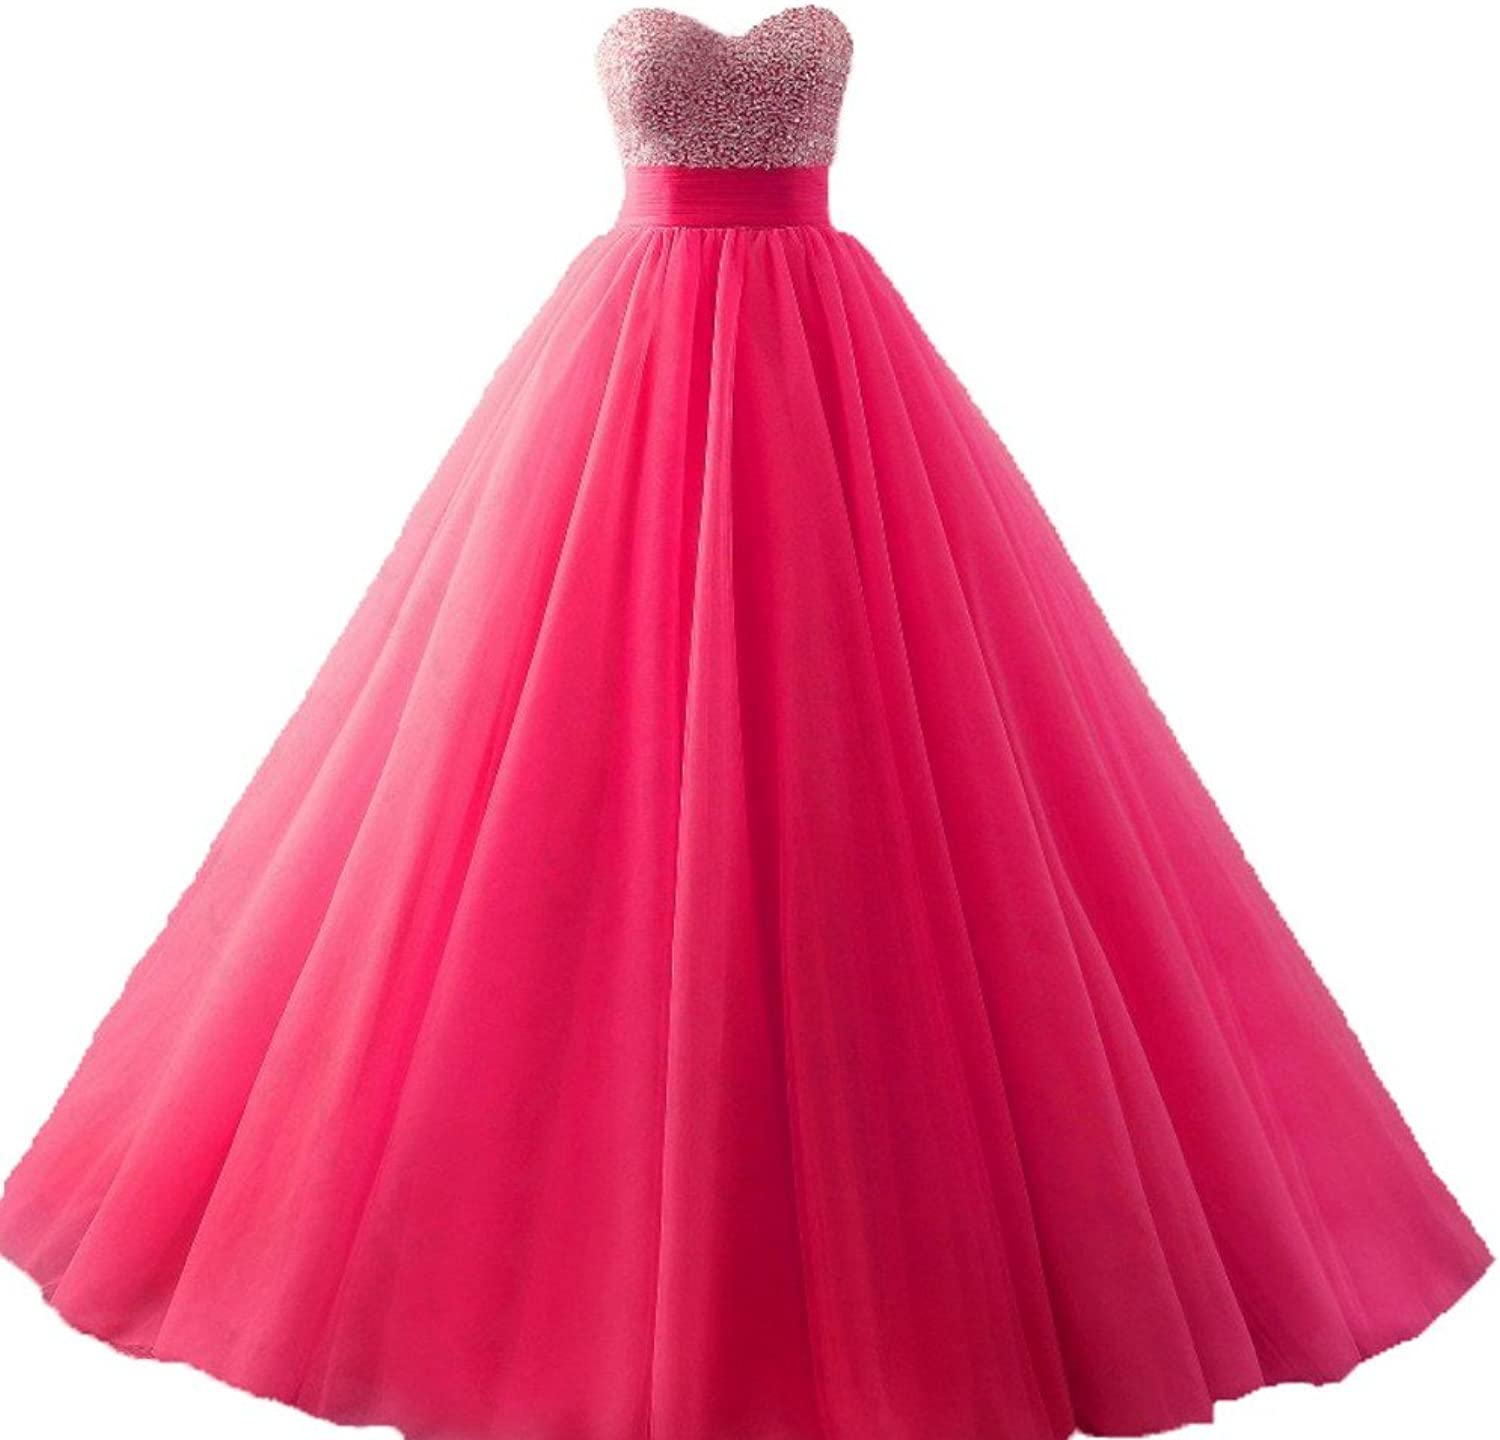 Diandiai Quinceanera Dresses Tulle Beads Ball Gown Long Prom Dress